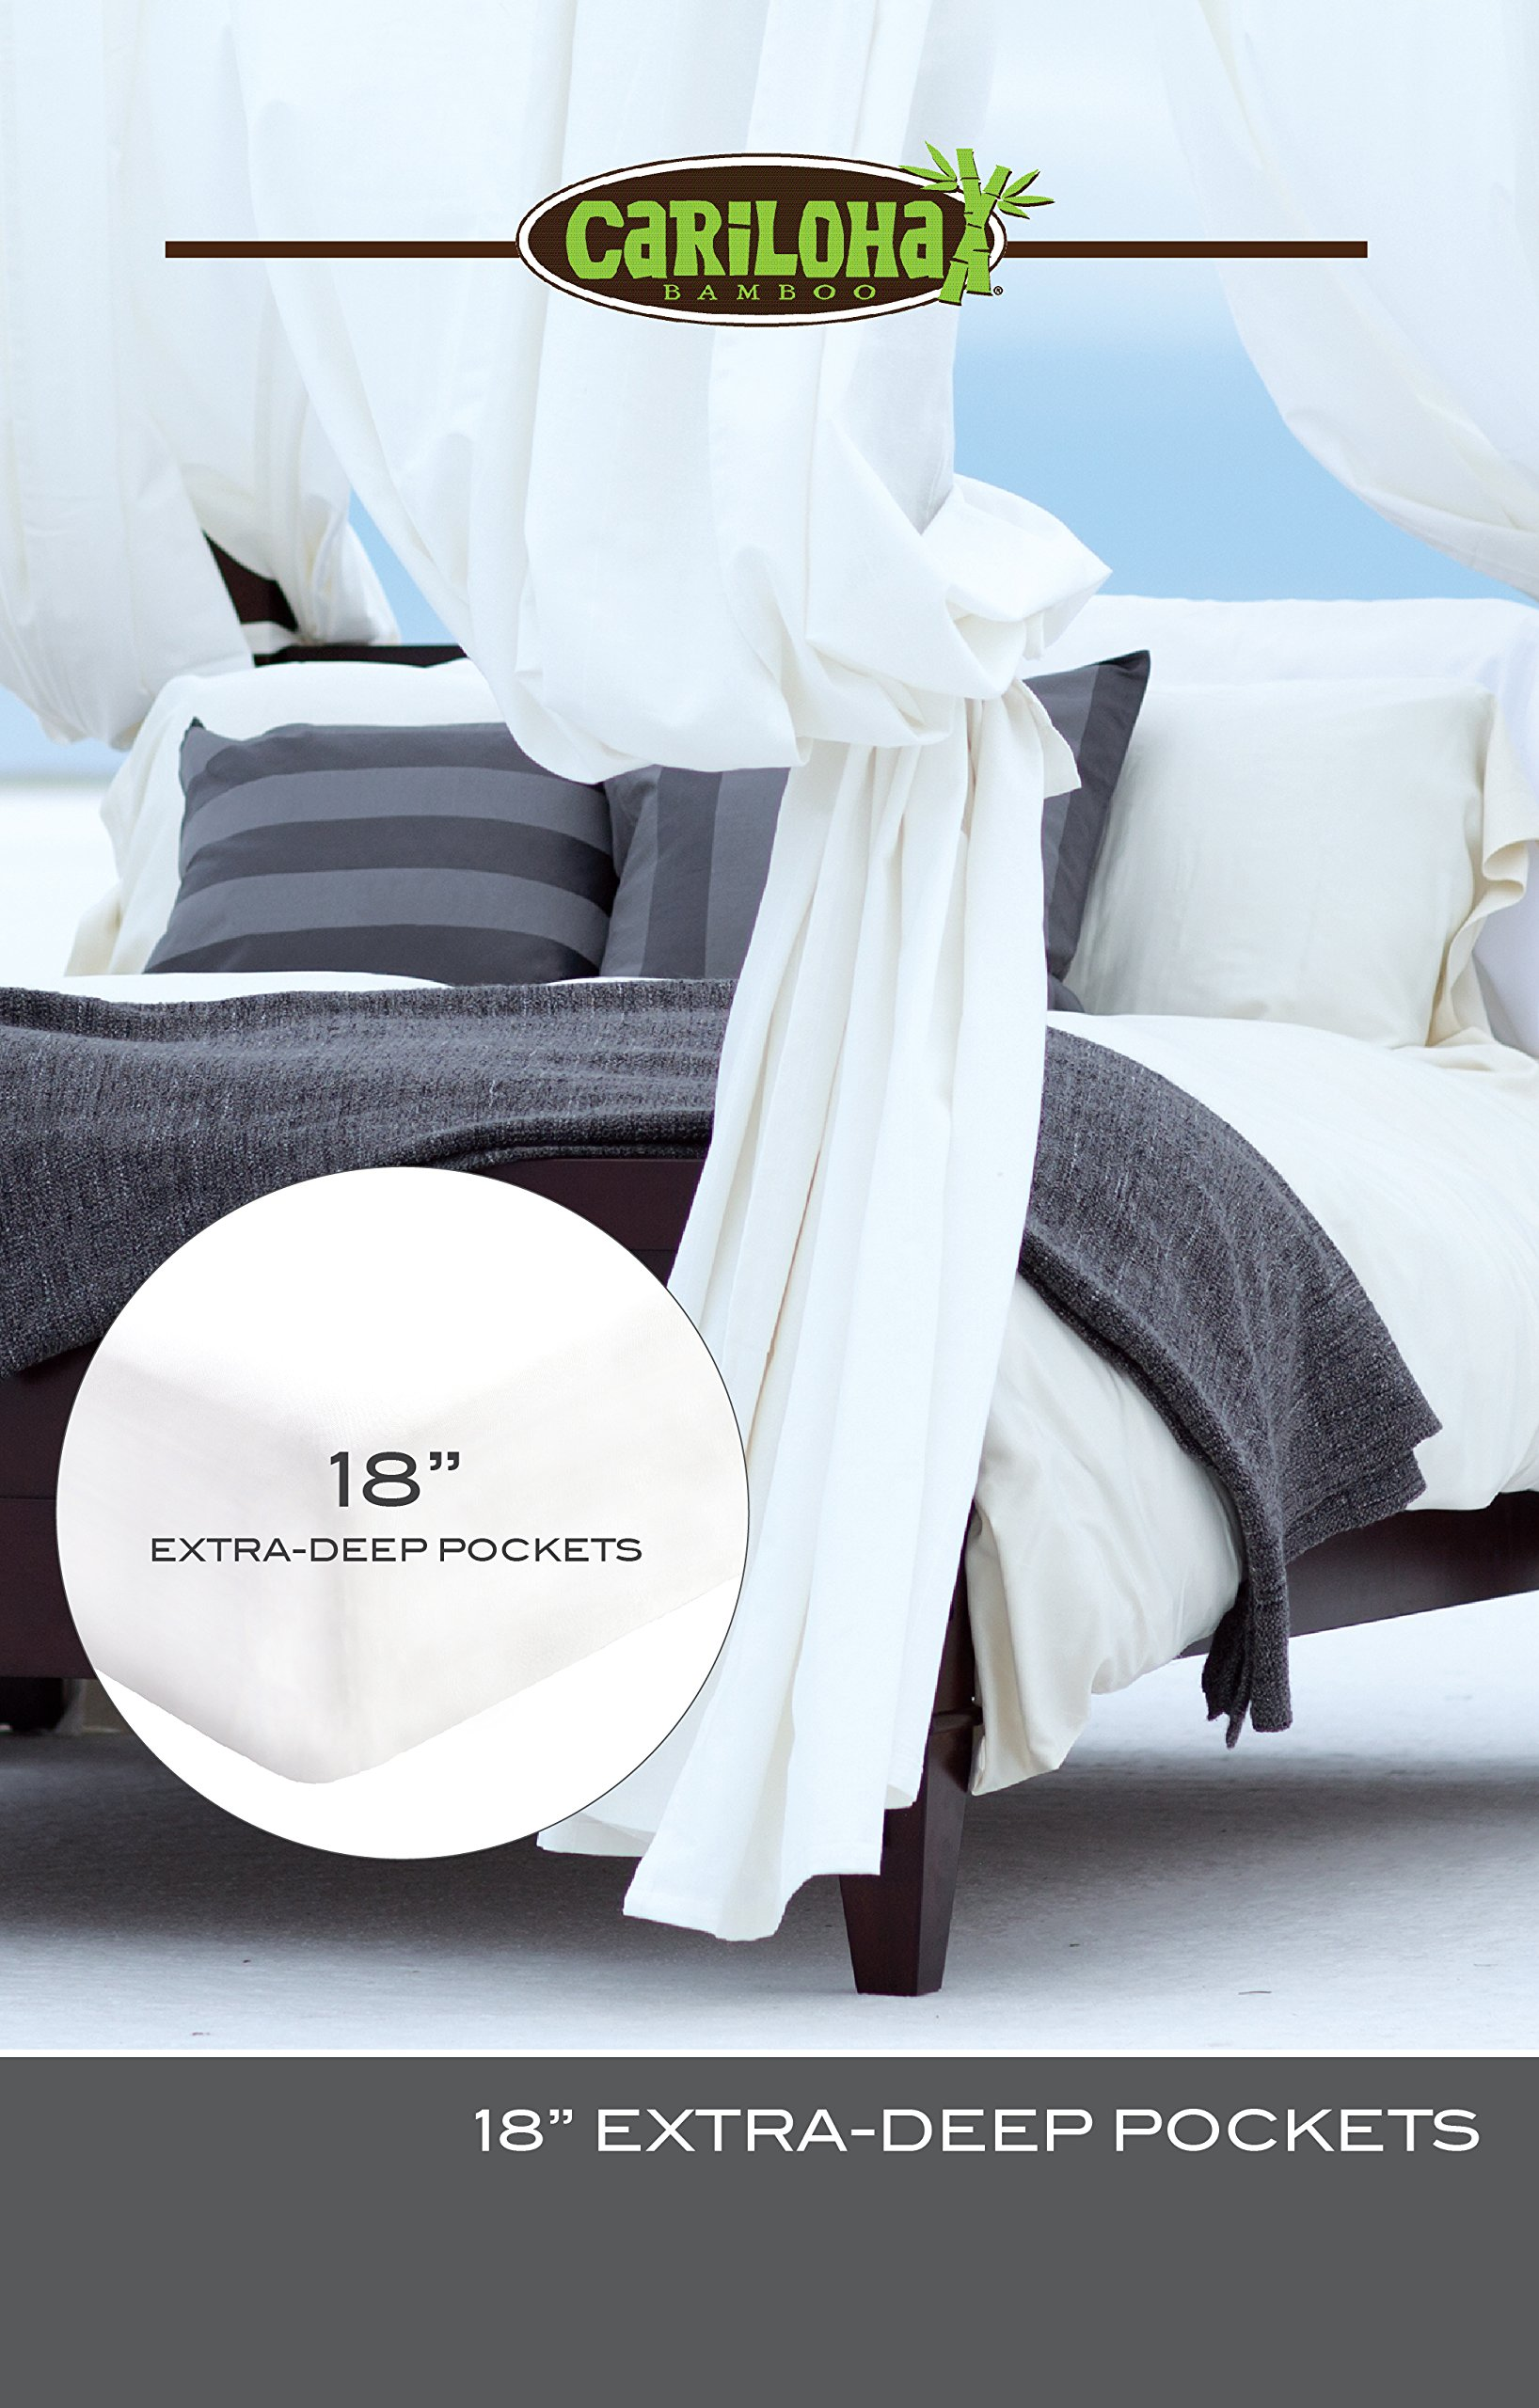 Classic Bamboo Sheets by Cariloha - 4 Piece Bed Sheet Set - Softest Bed Sheets and Pillow Cases - Lifetime Protection (Queen, White) by Cariloha (Image #6)